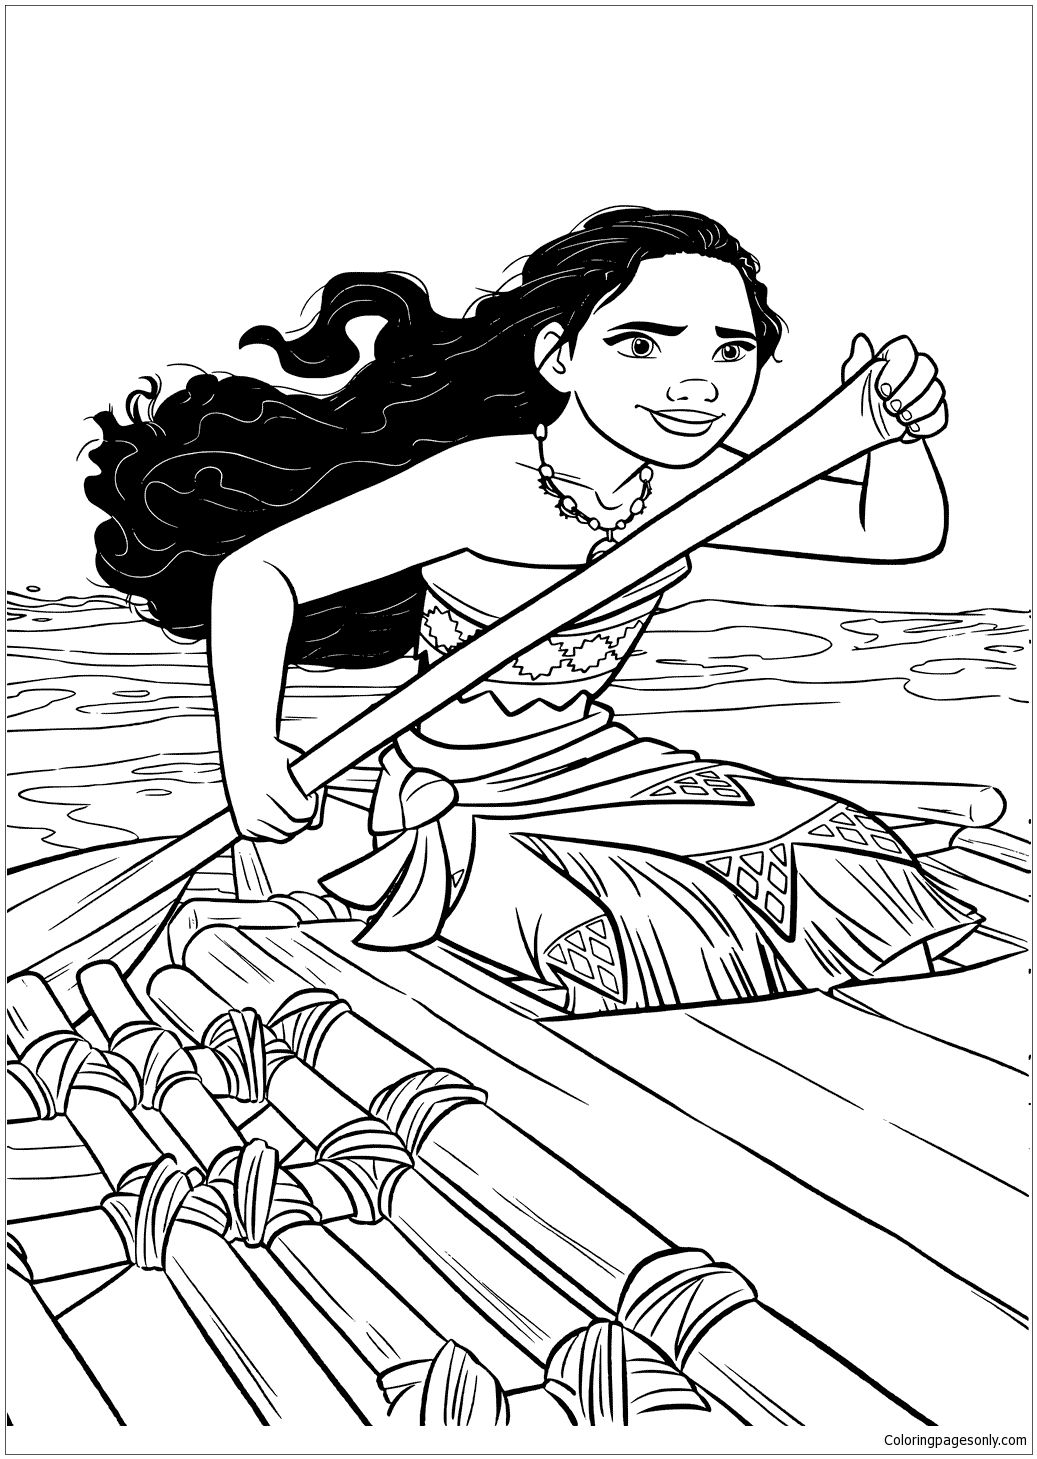 Moana In A Boat Coloring Page Moana Coloring Moana Coloring Pages Moana Coloring Sheets